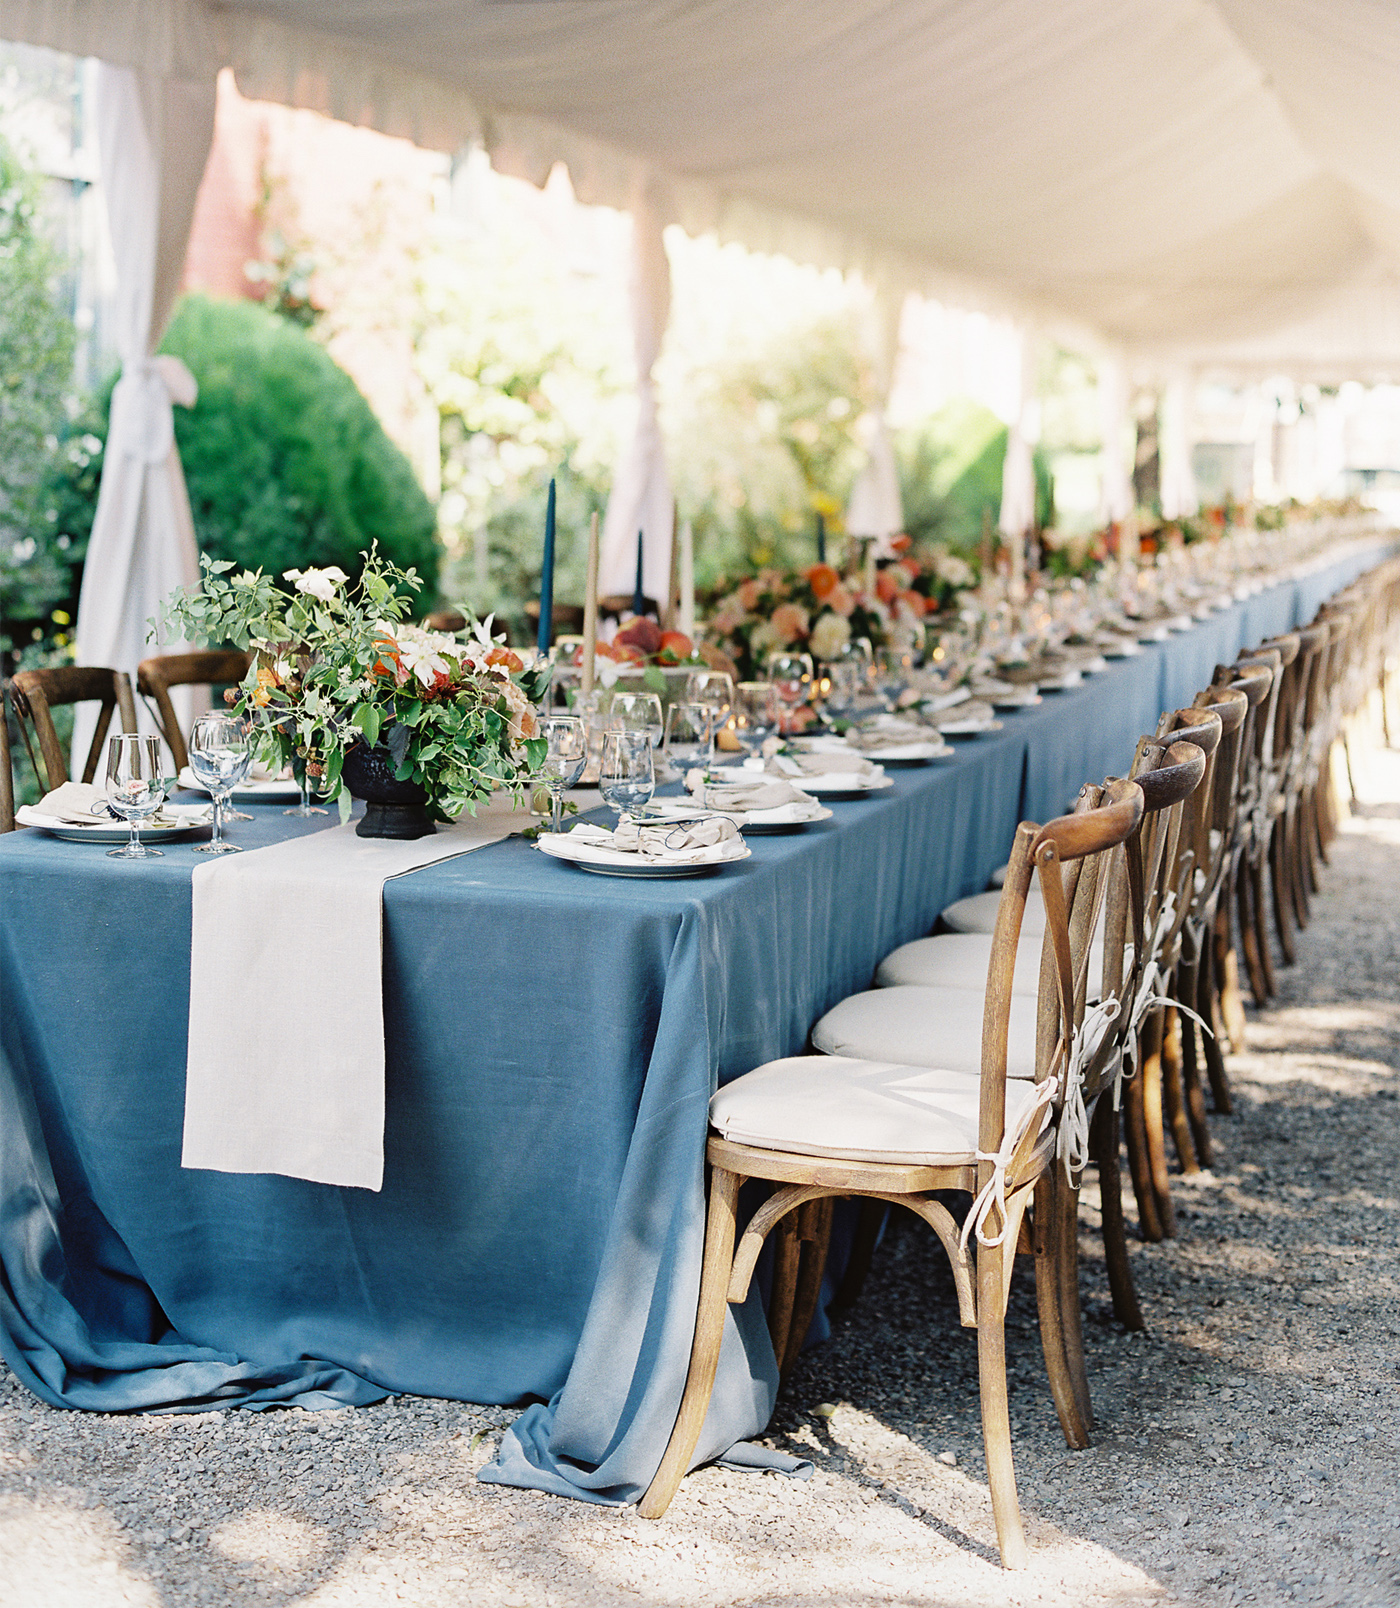 la Happy Rustic Corson Building Wedding Tables